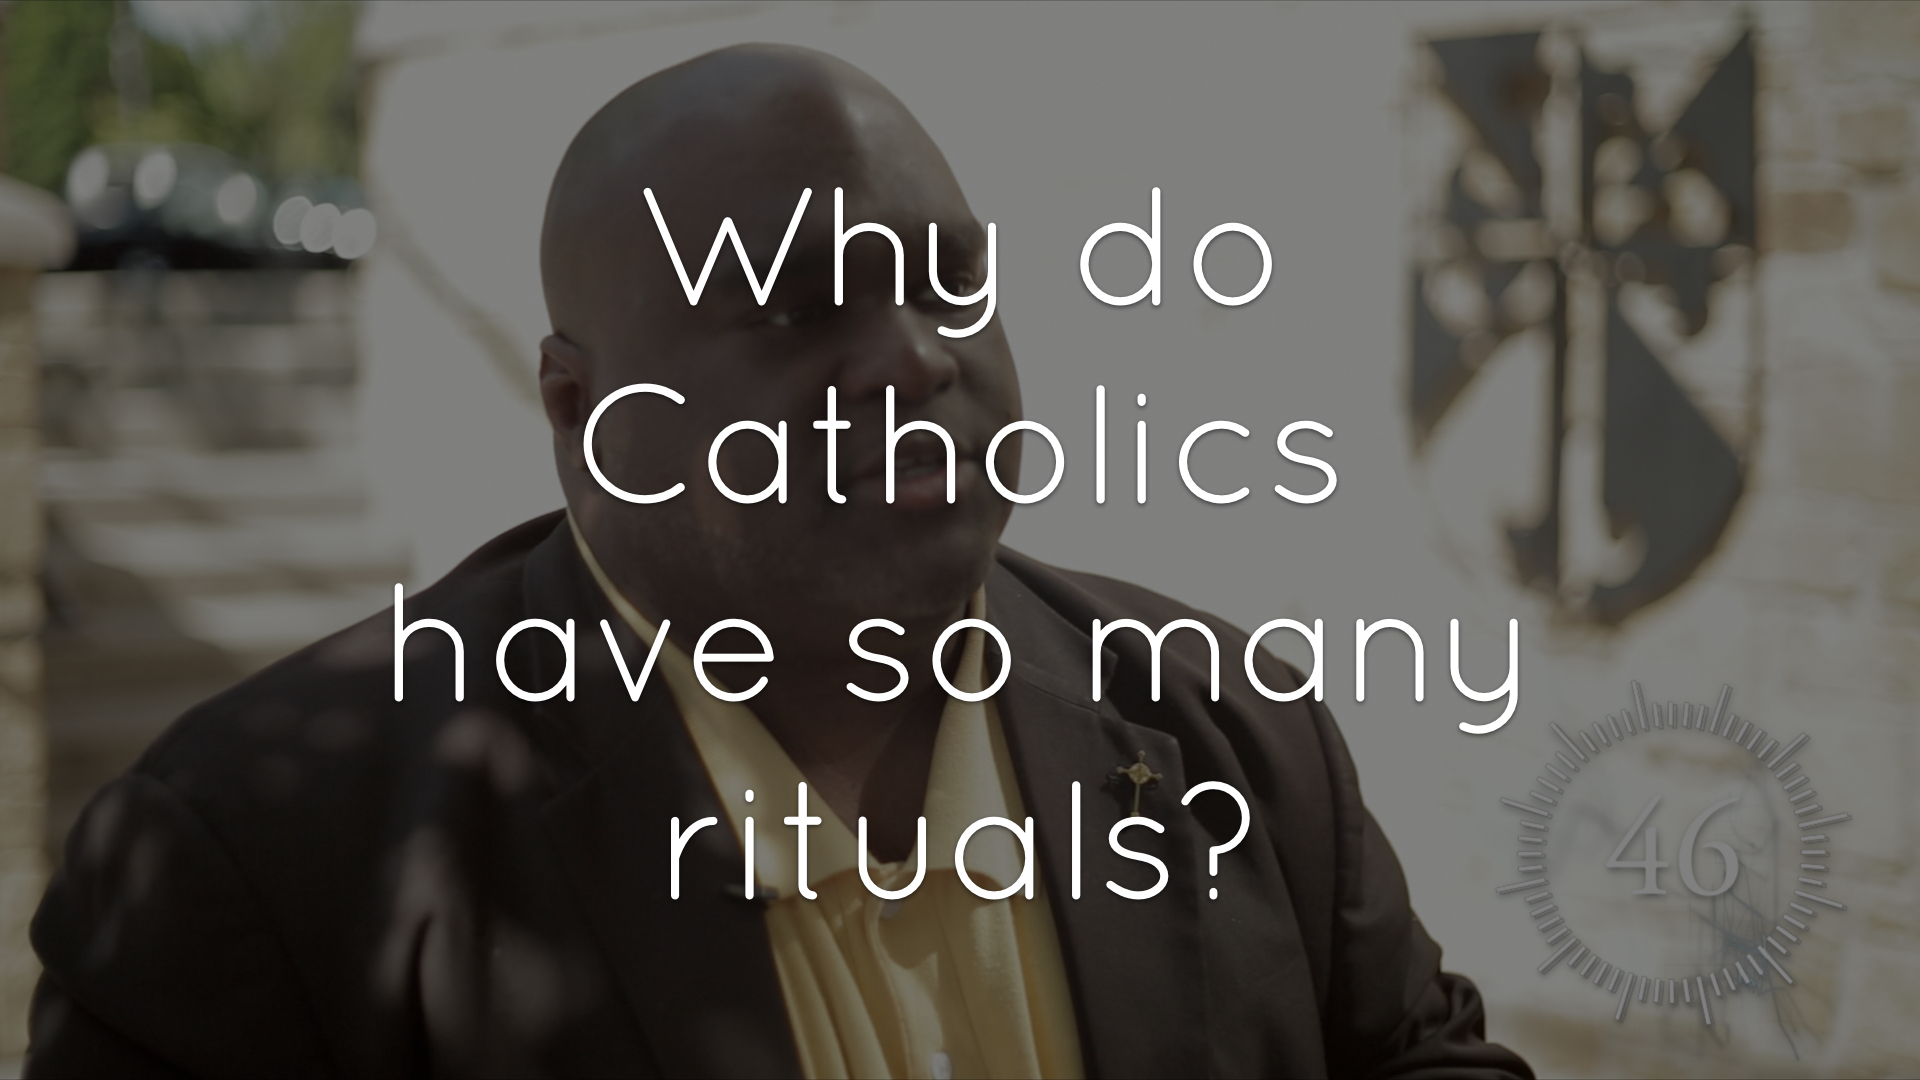 Why do Catholics have so many rituals?